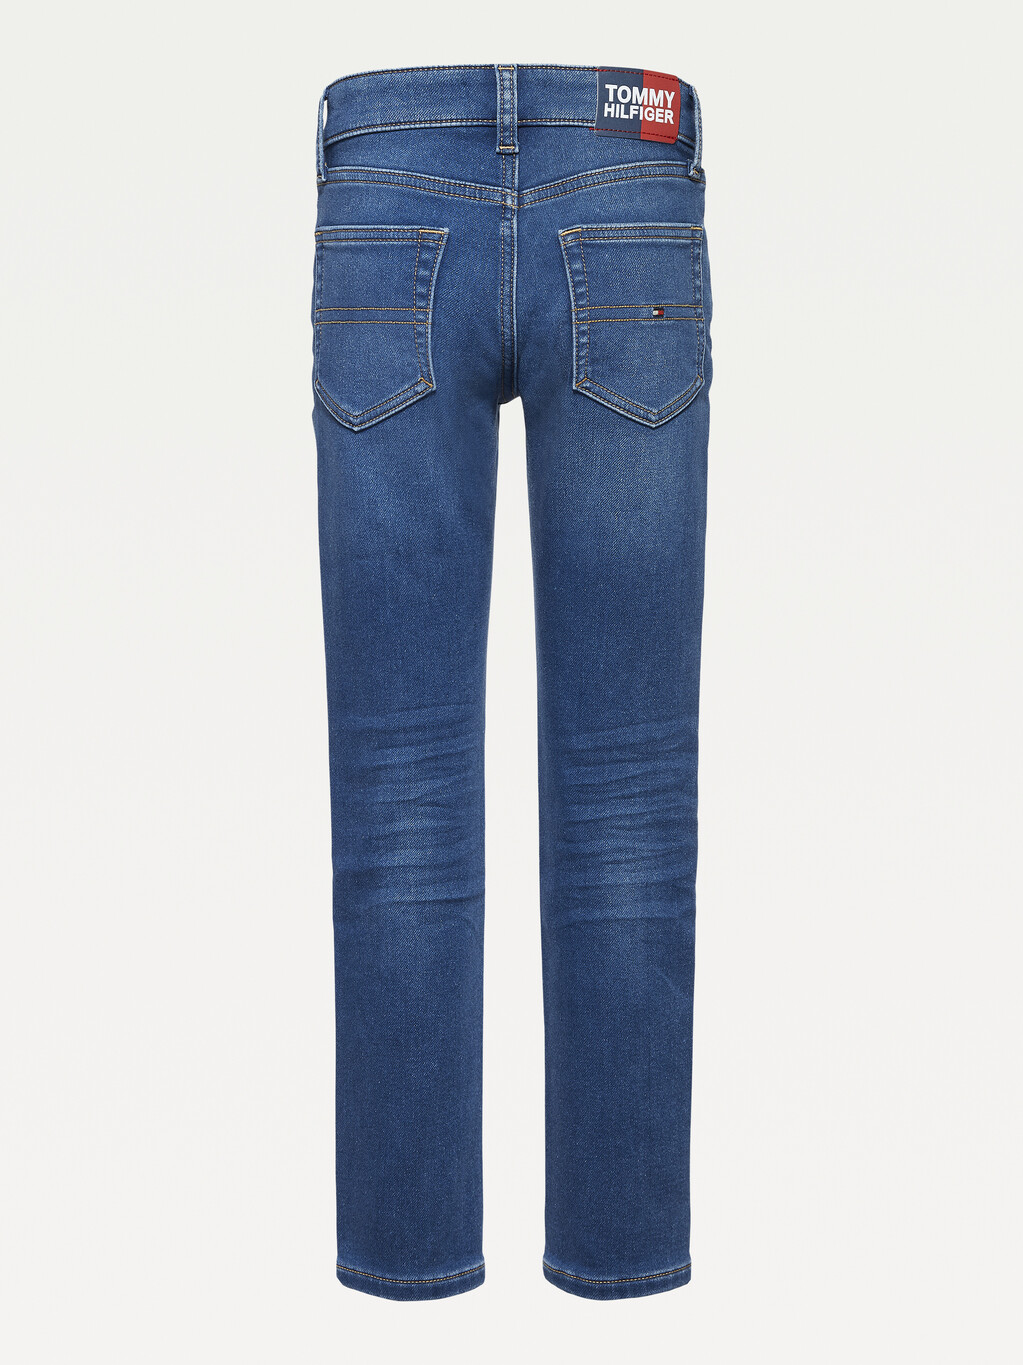 Scanton Faded Knee Jeans